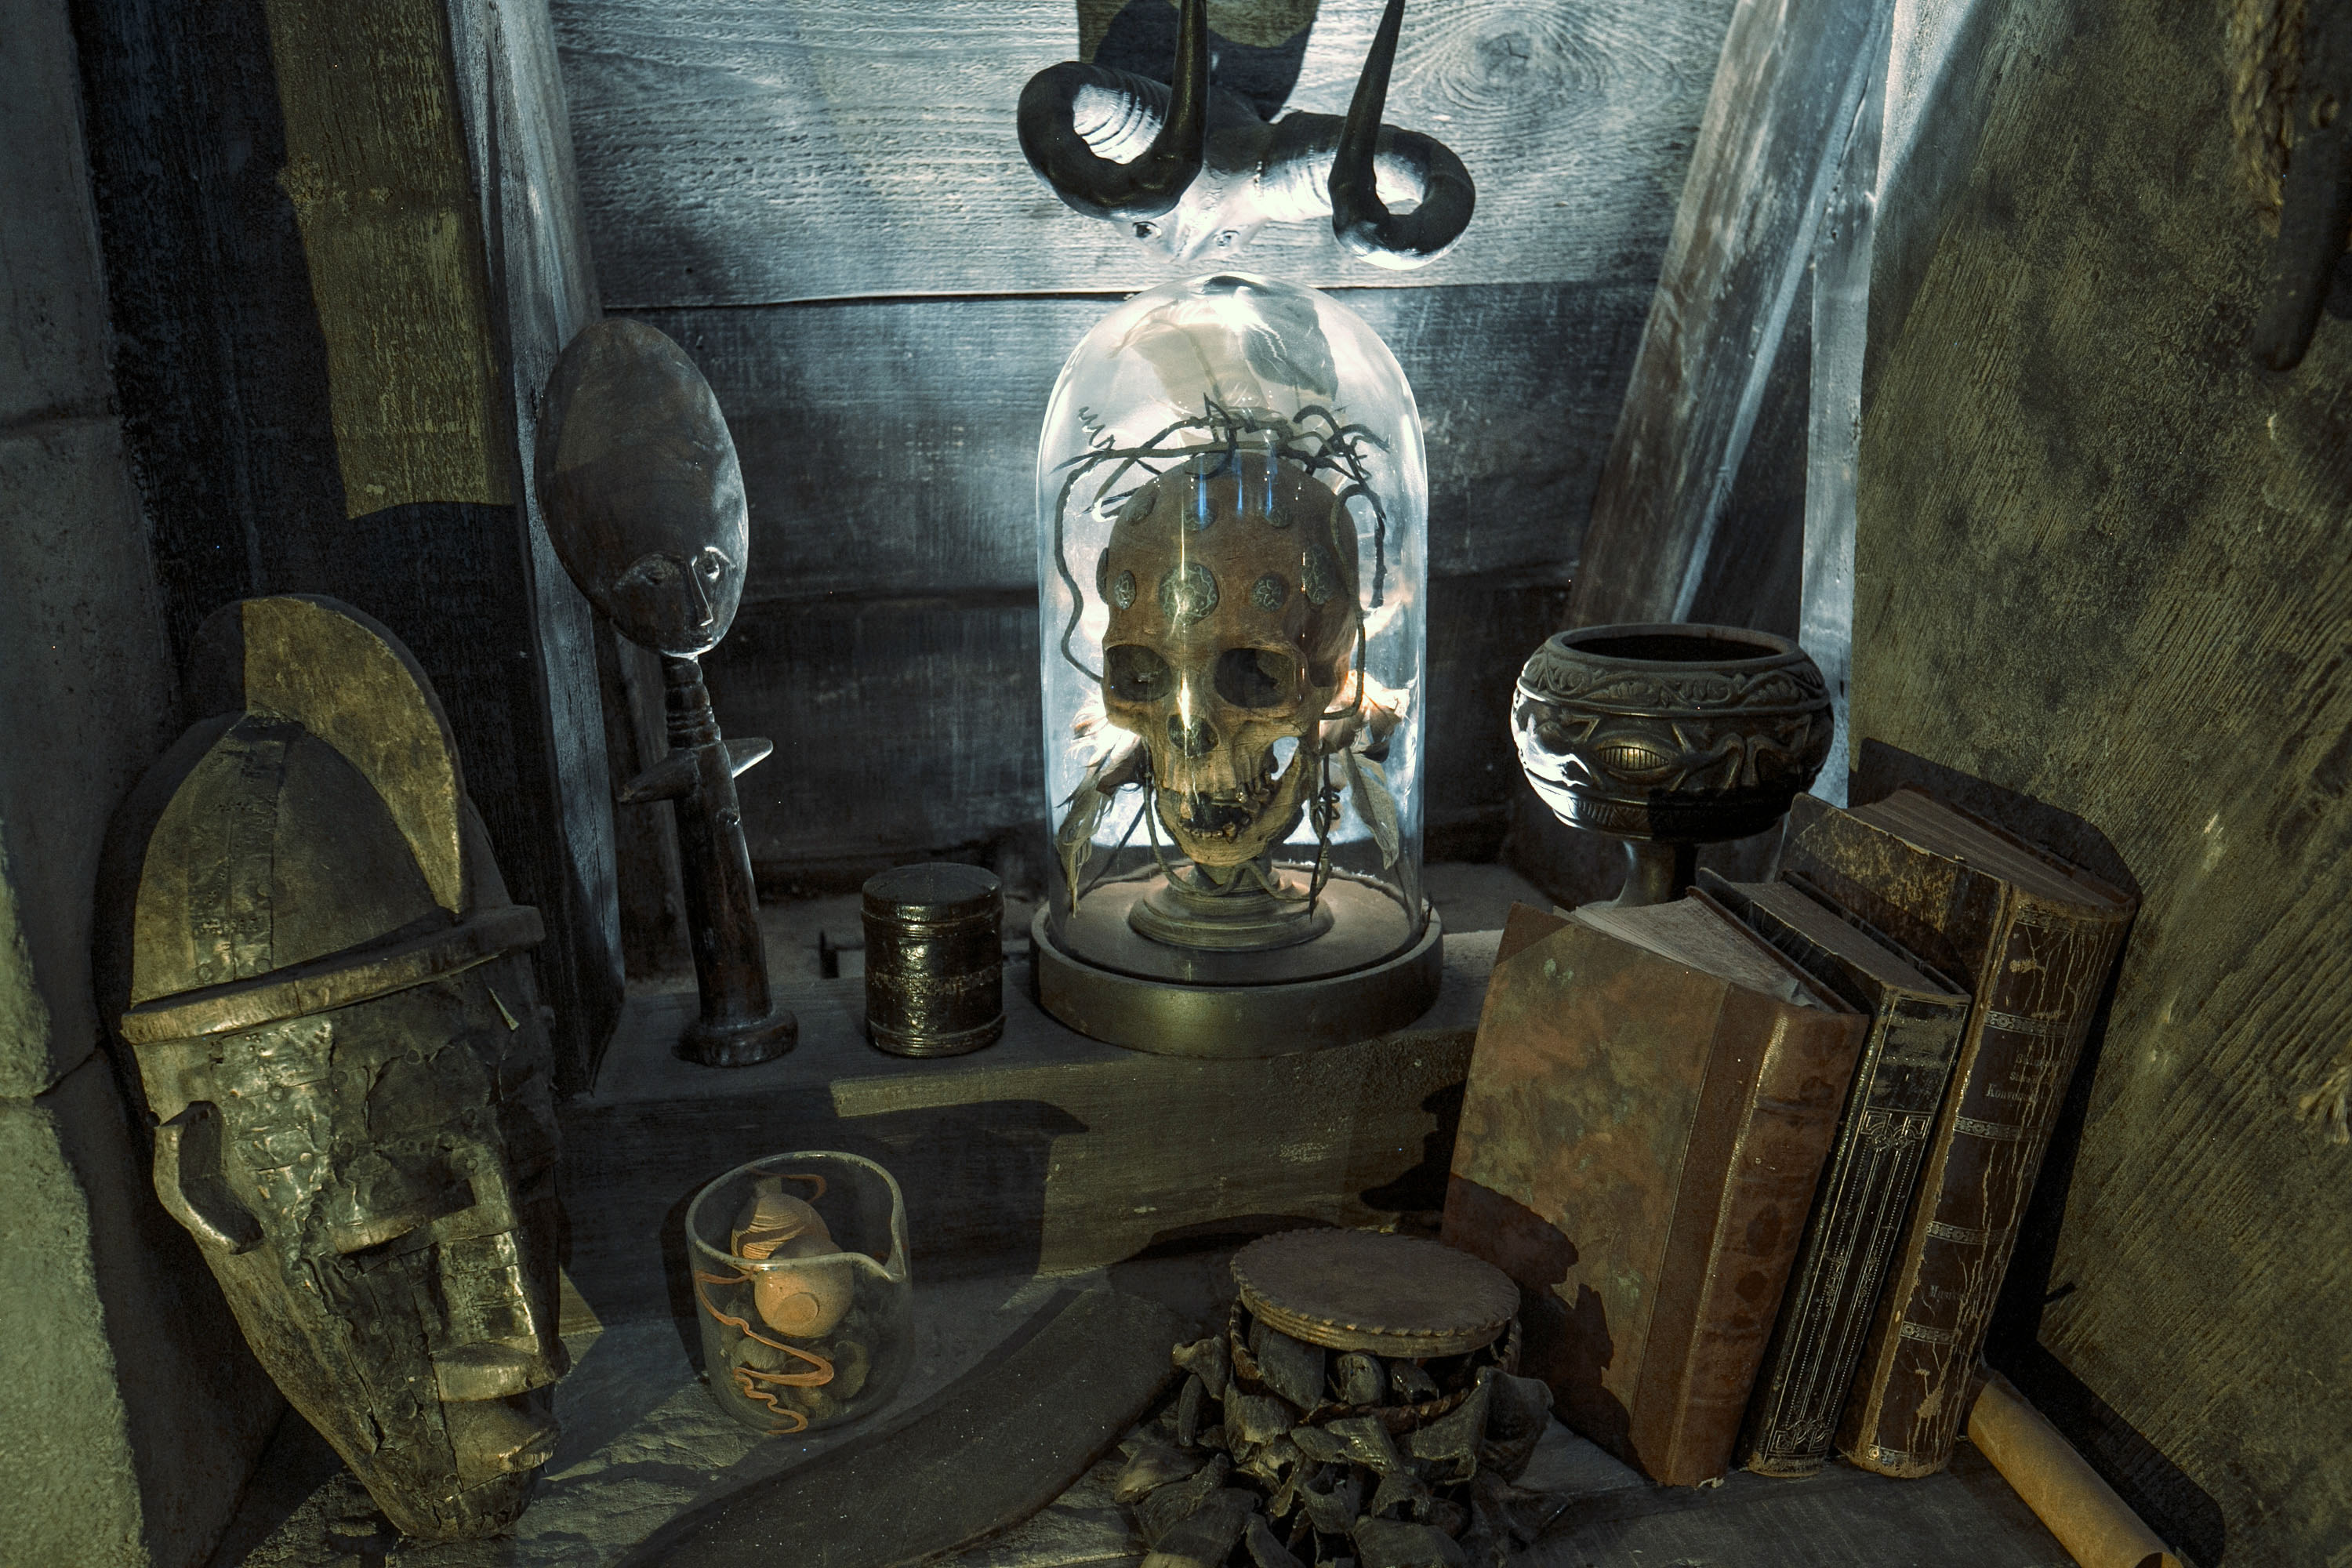 Items inside the Defence Against the Dark Arts classroom within Hogwarts castle